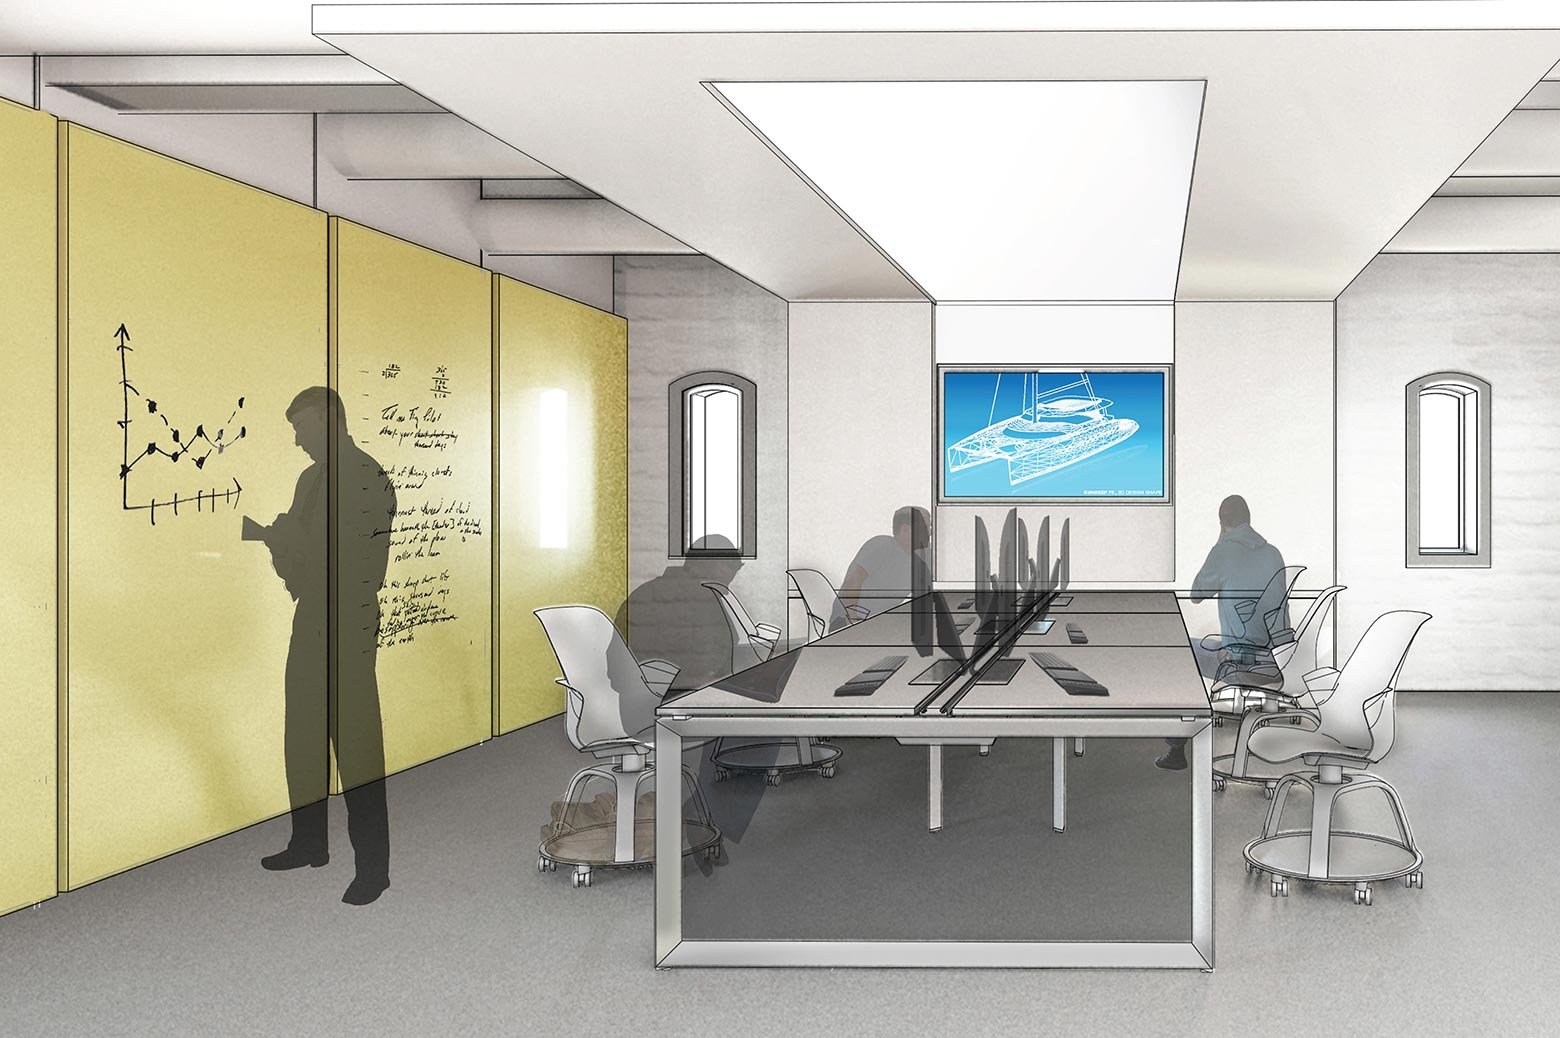 An artist's rendering of the renovated work space in the Friedman Marine Hydrodynamics Lab.